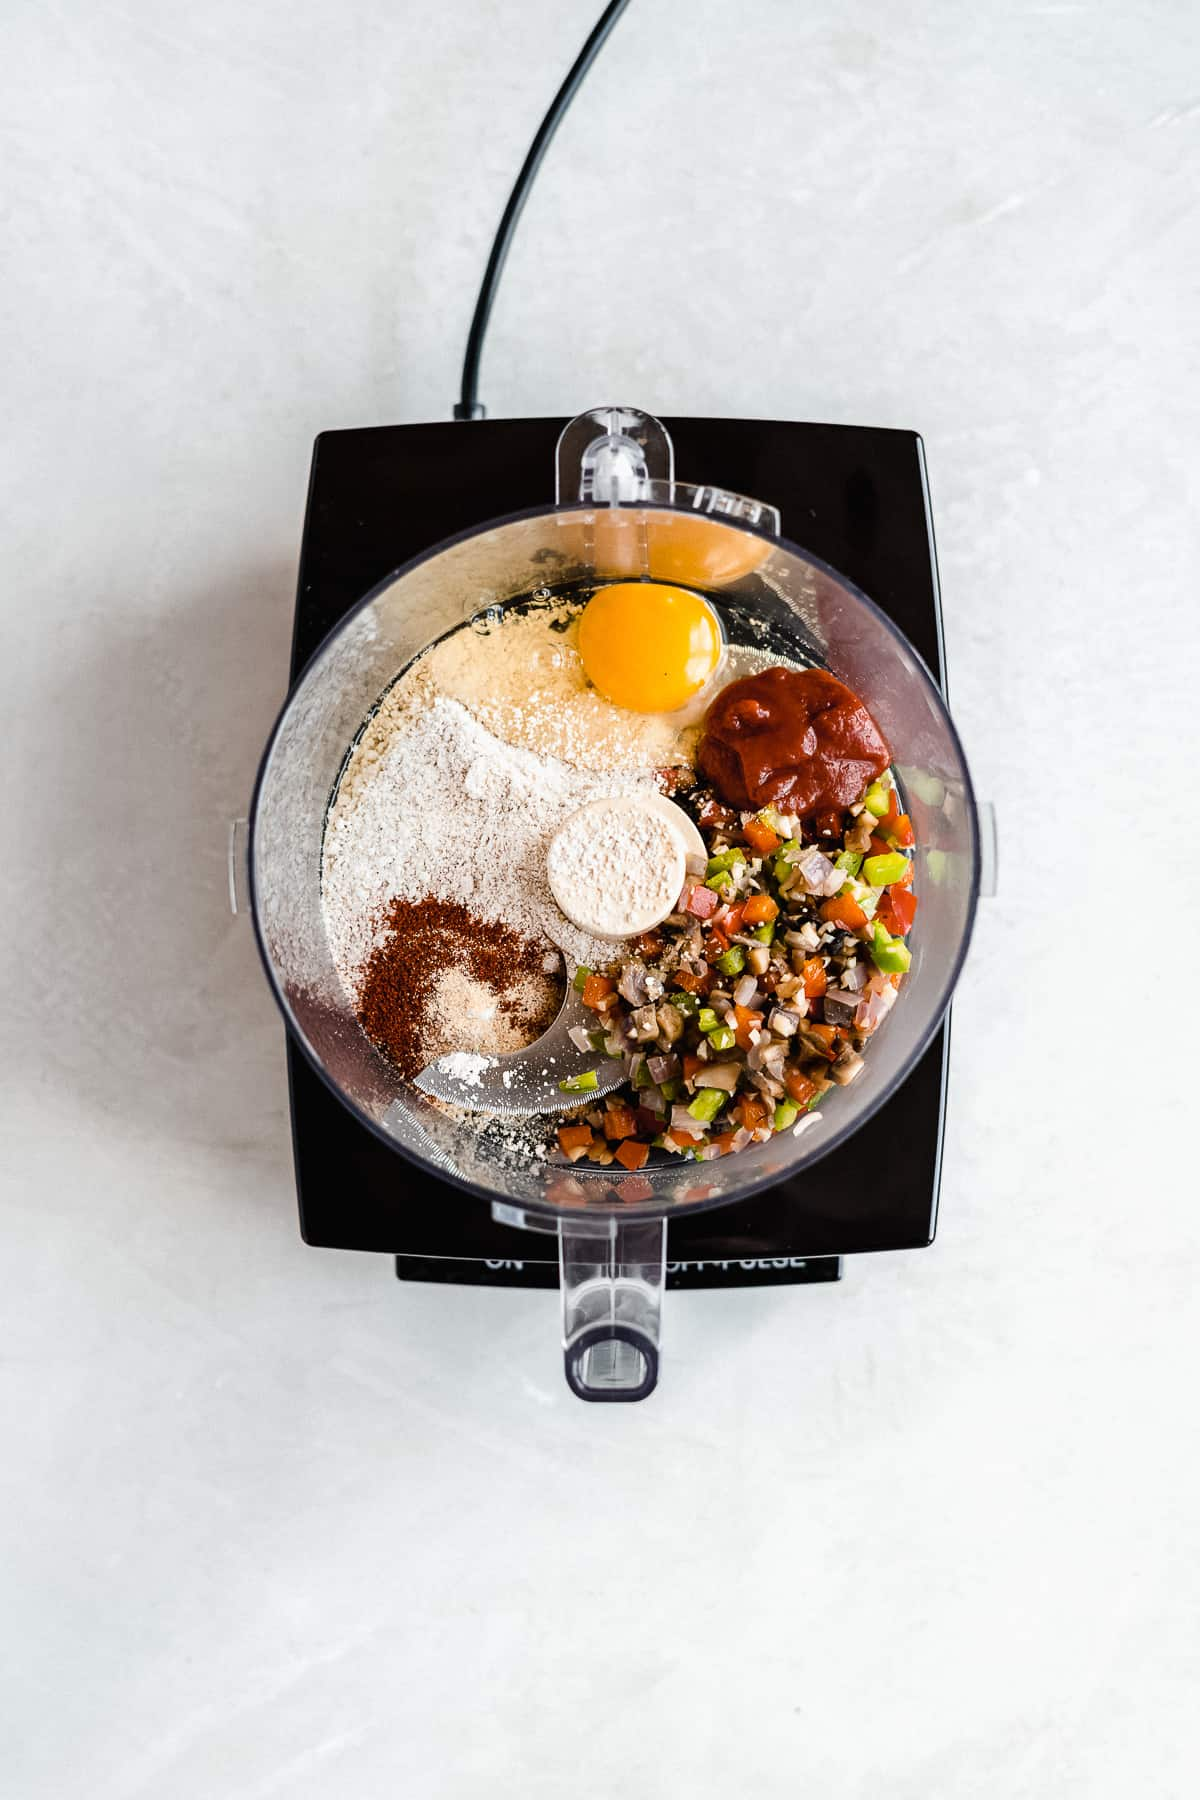 Overhead photo of a mixer with all the ingredients for the black bean burger about to be mixed together.